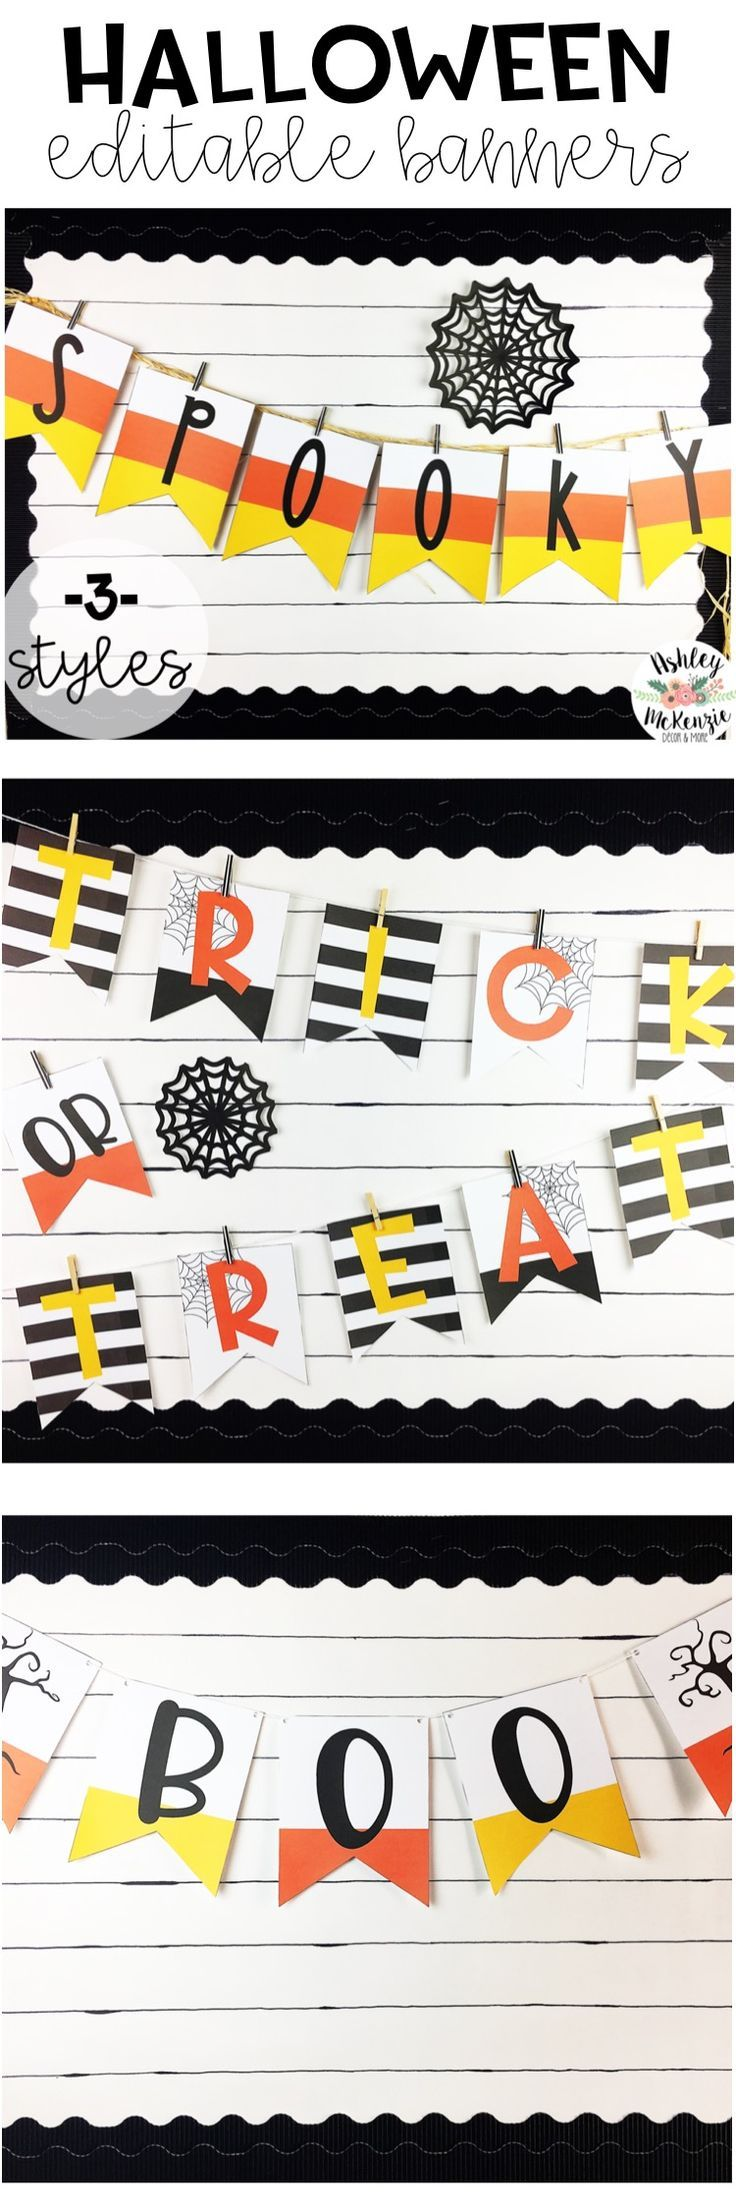 Halloween Banners (Editable) #octoberbulletinboards